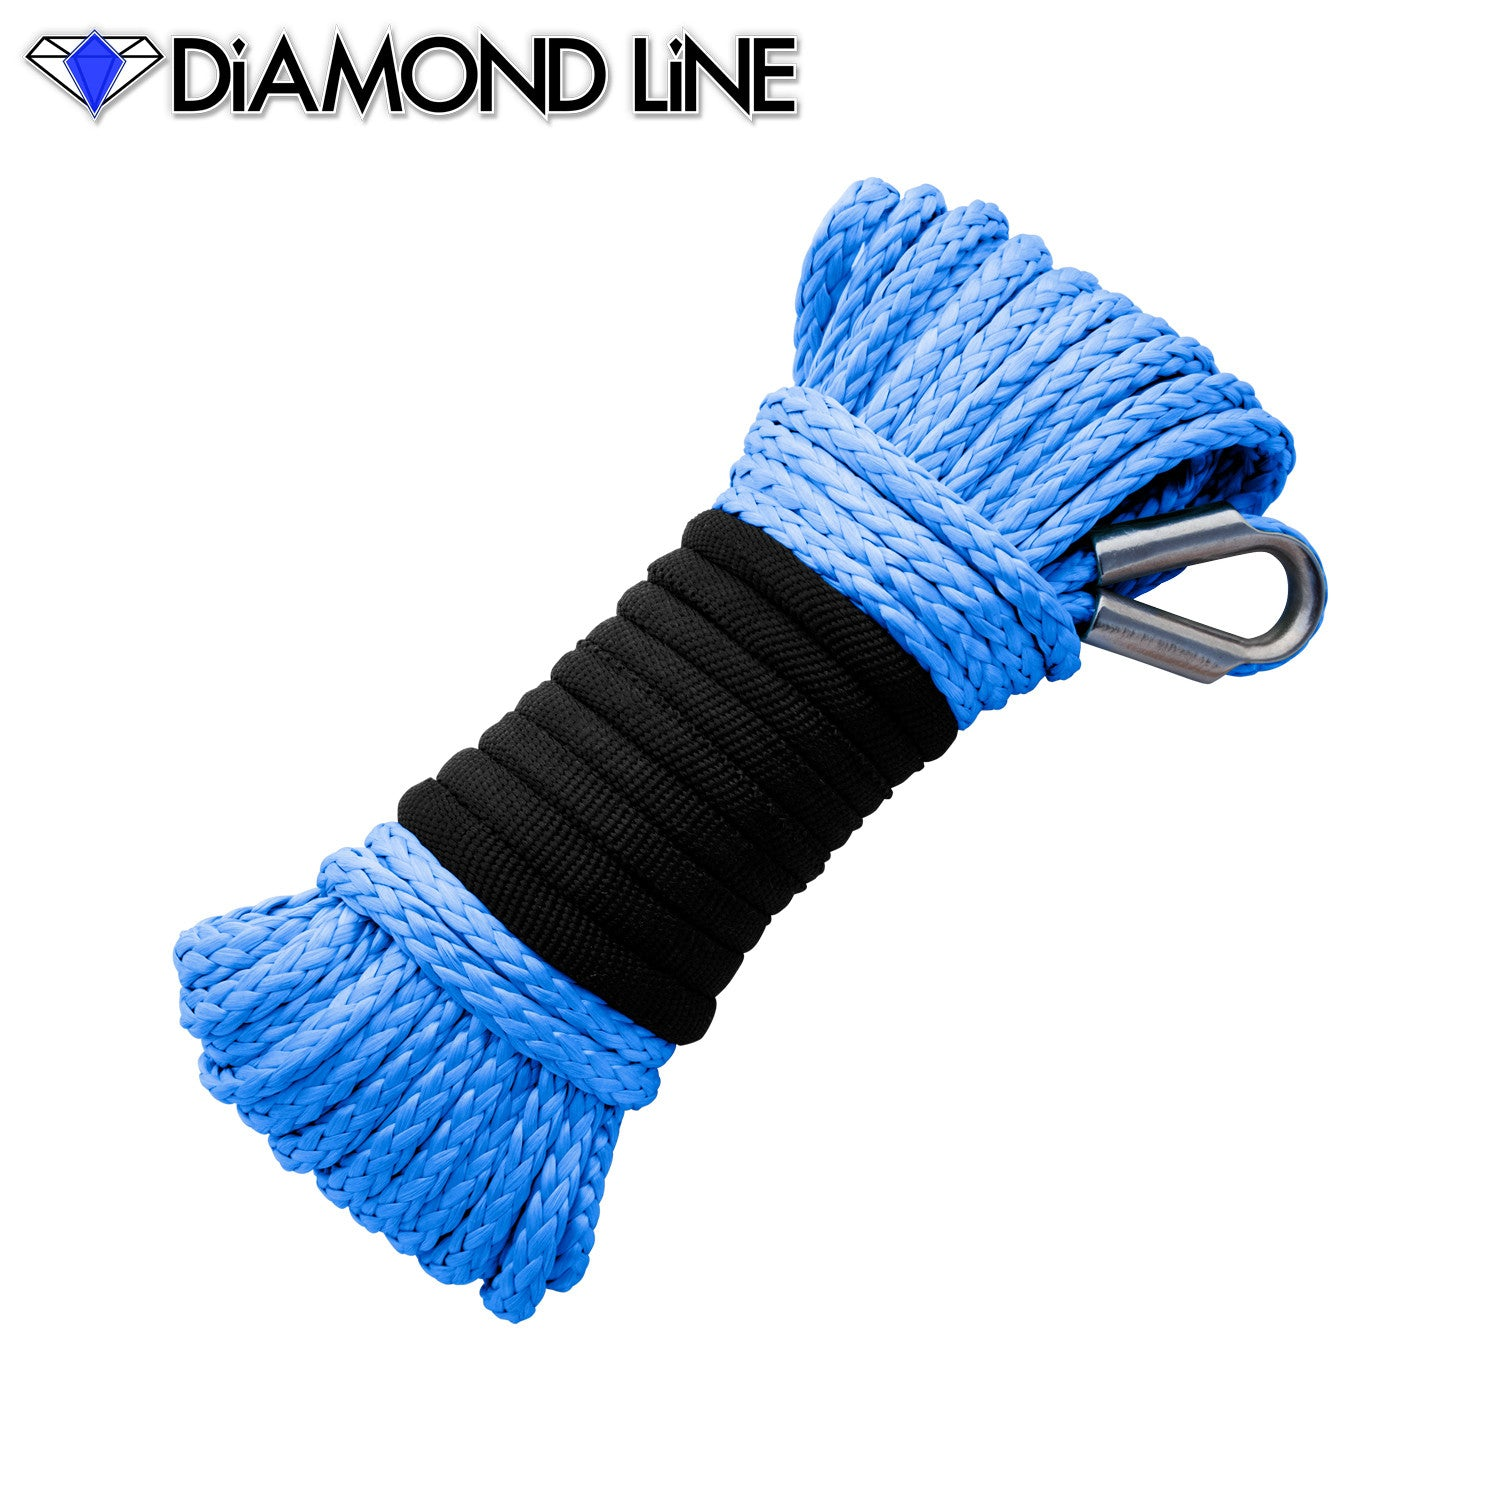 "3/16"" x 50' Diamond Line Winch Rope Mainline - Blue."